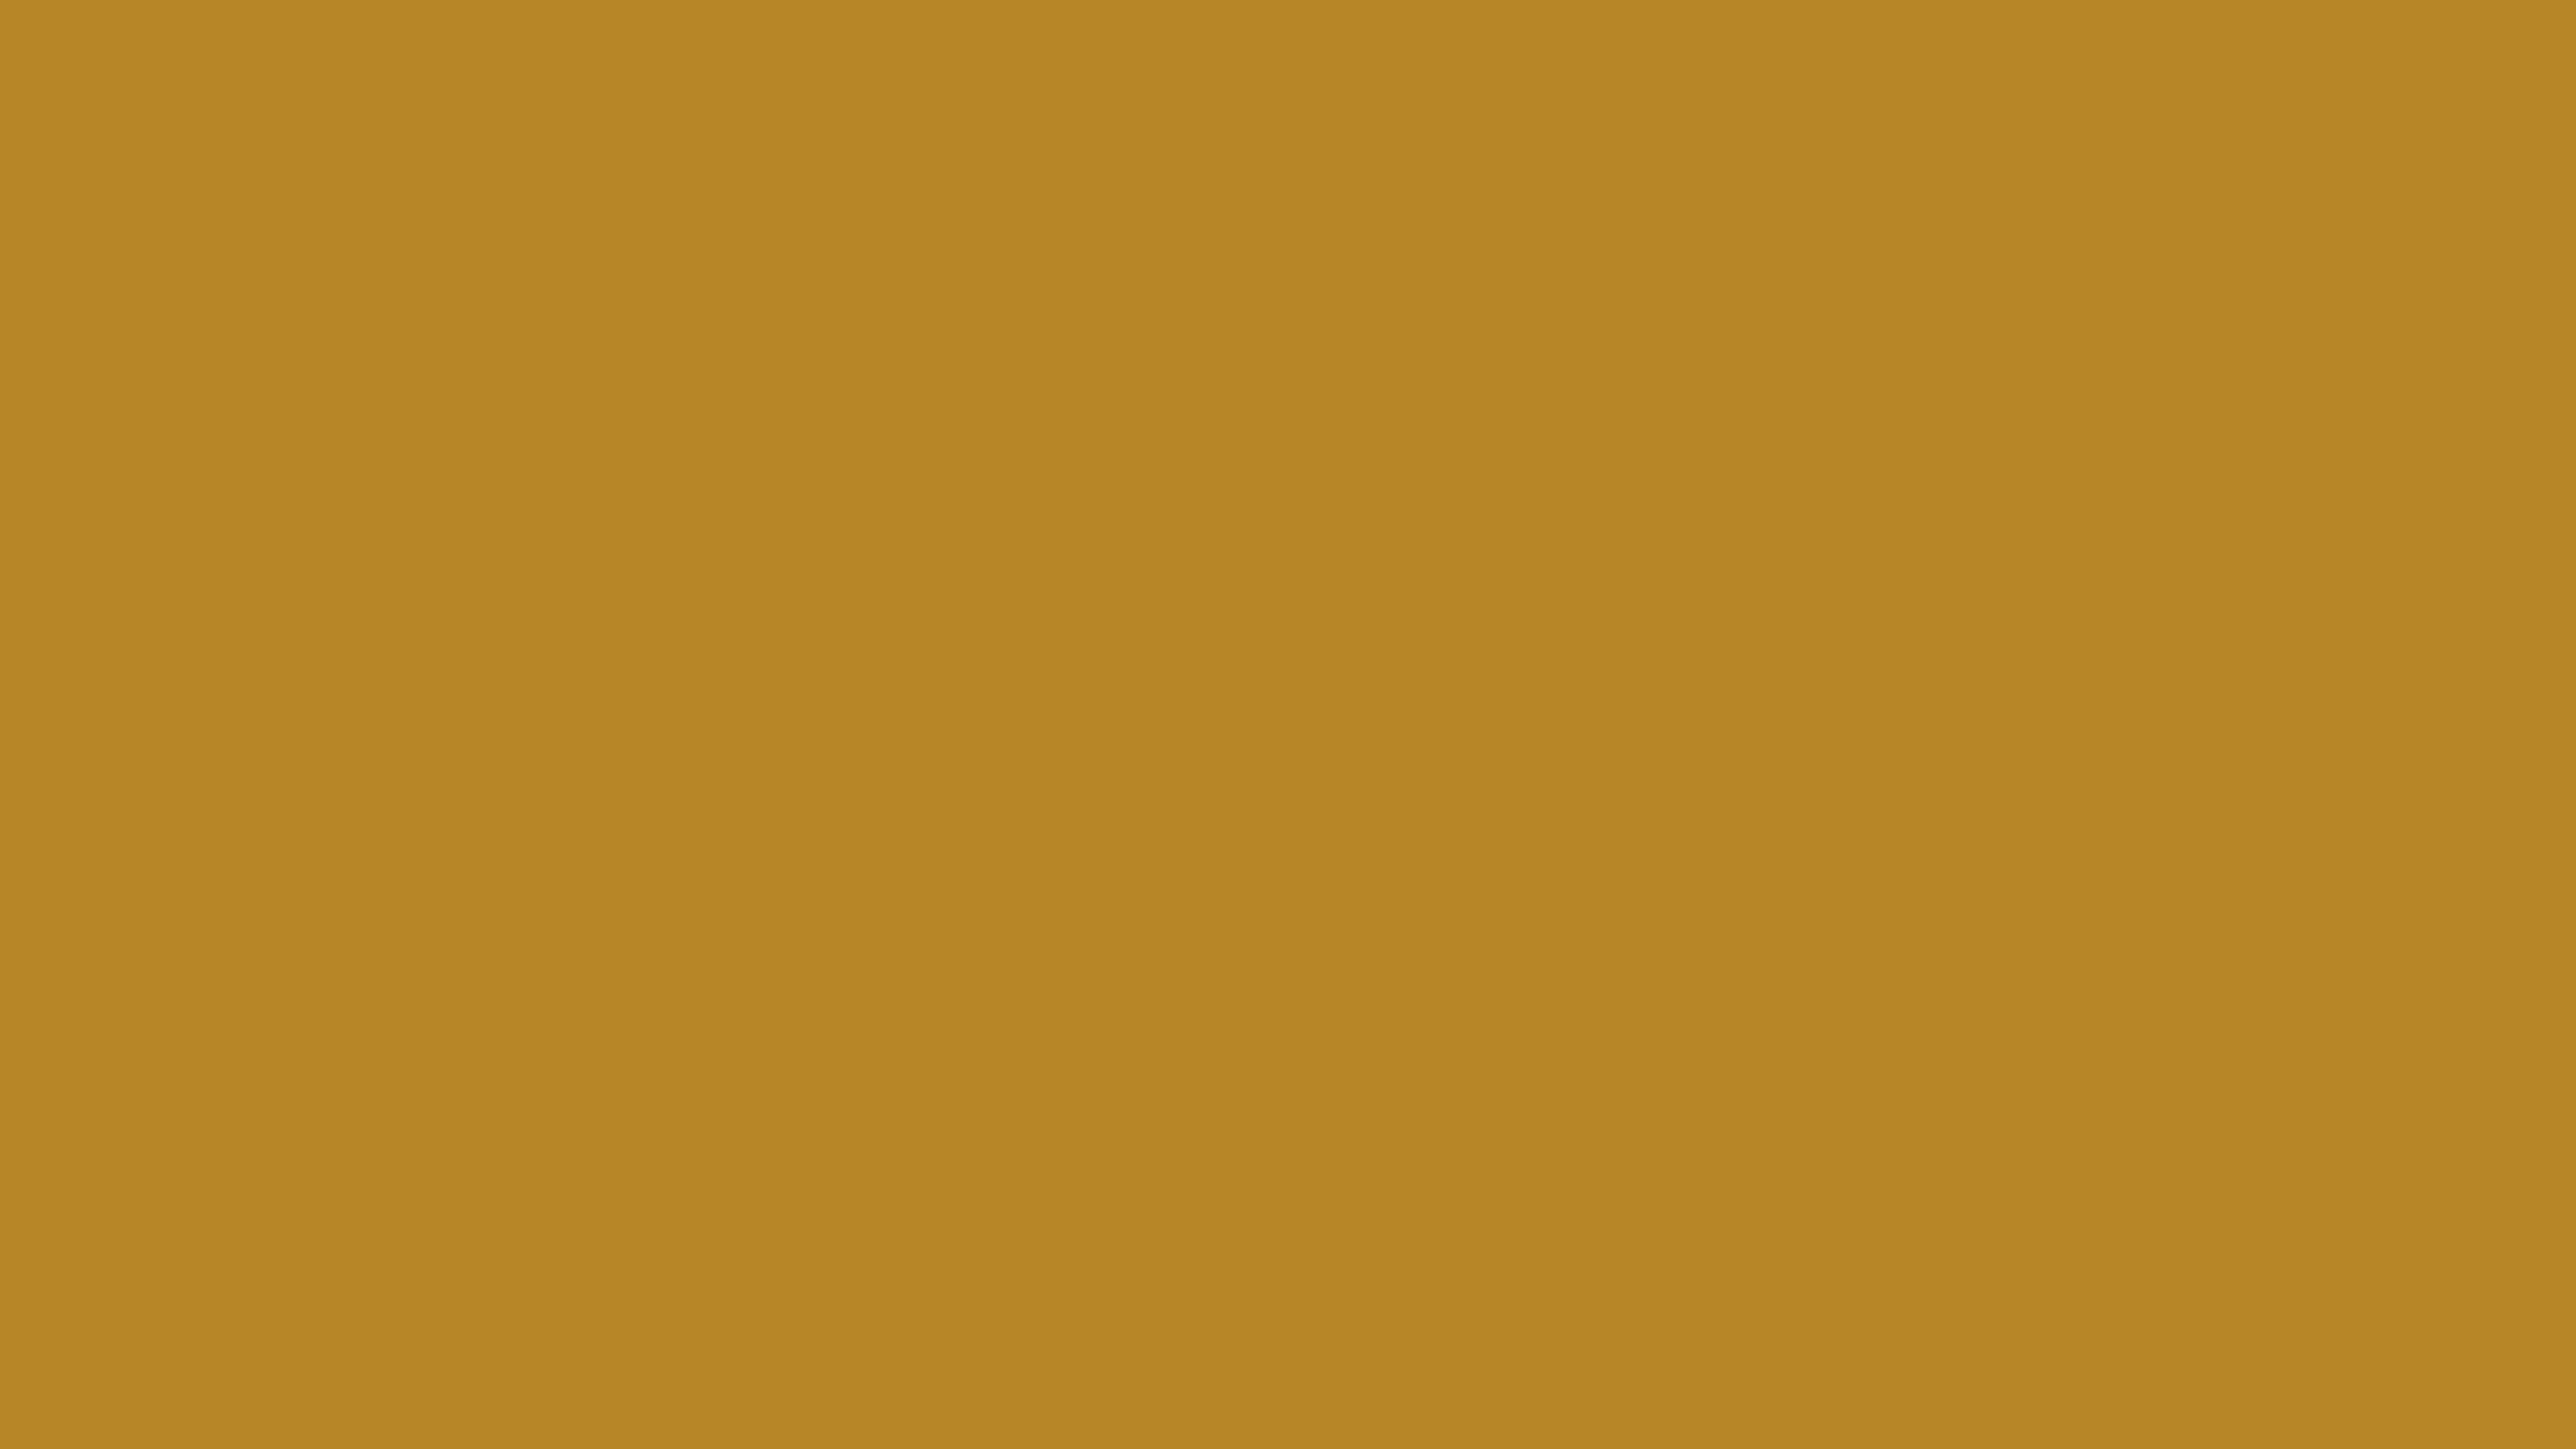 3840x2160 University Of California Gold Solid Color Background